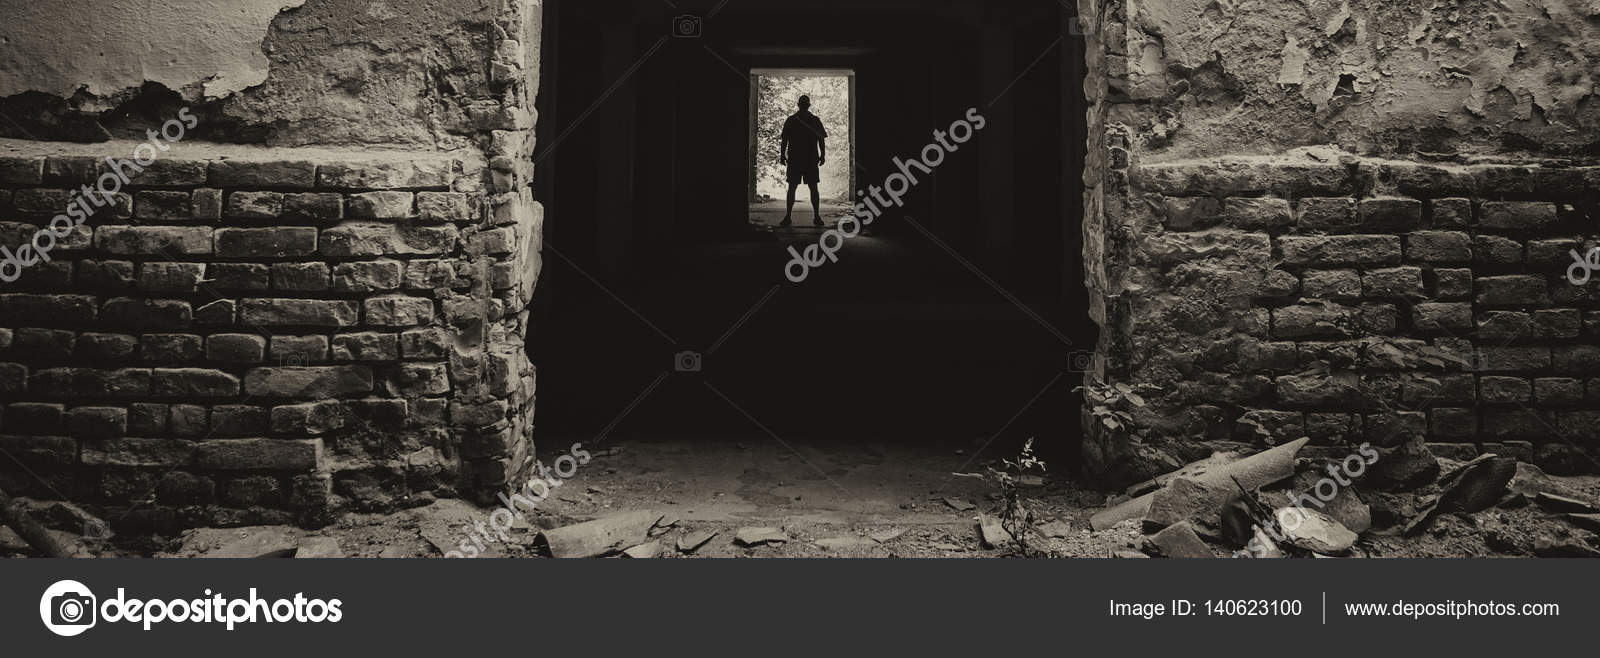 Silhouette Of The Man Standing At The End Of Dark Corridor Of Abandoned Building Stock Photo C Solidphotos 140623100